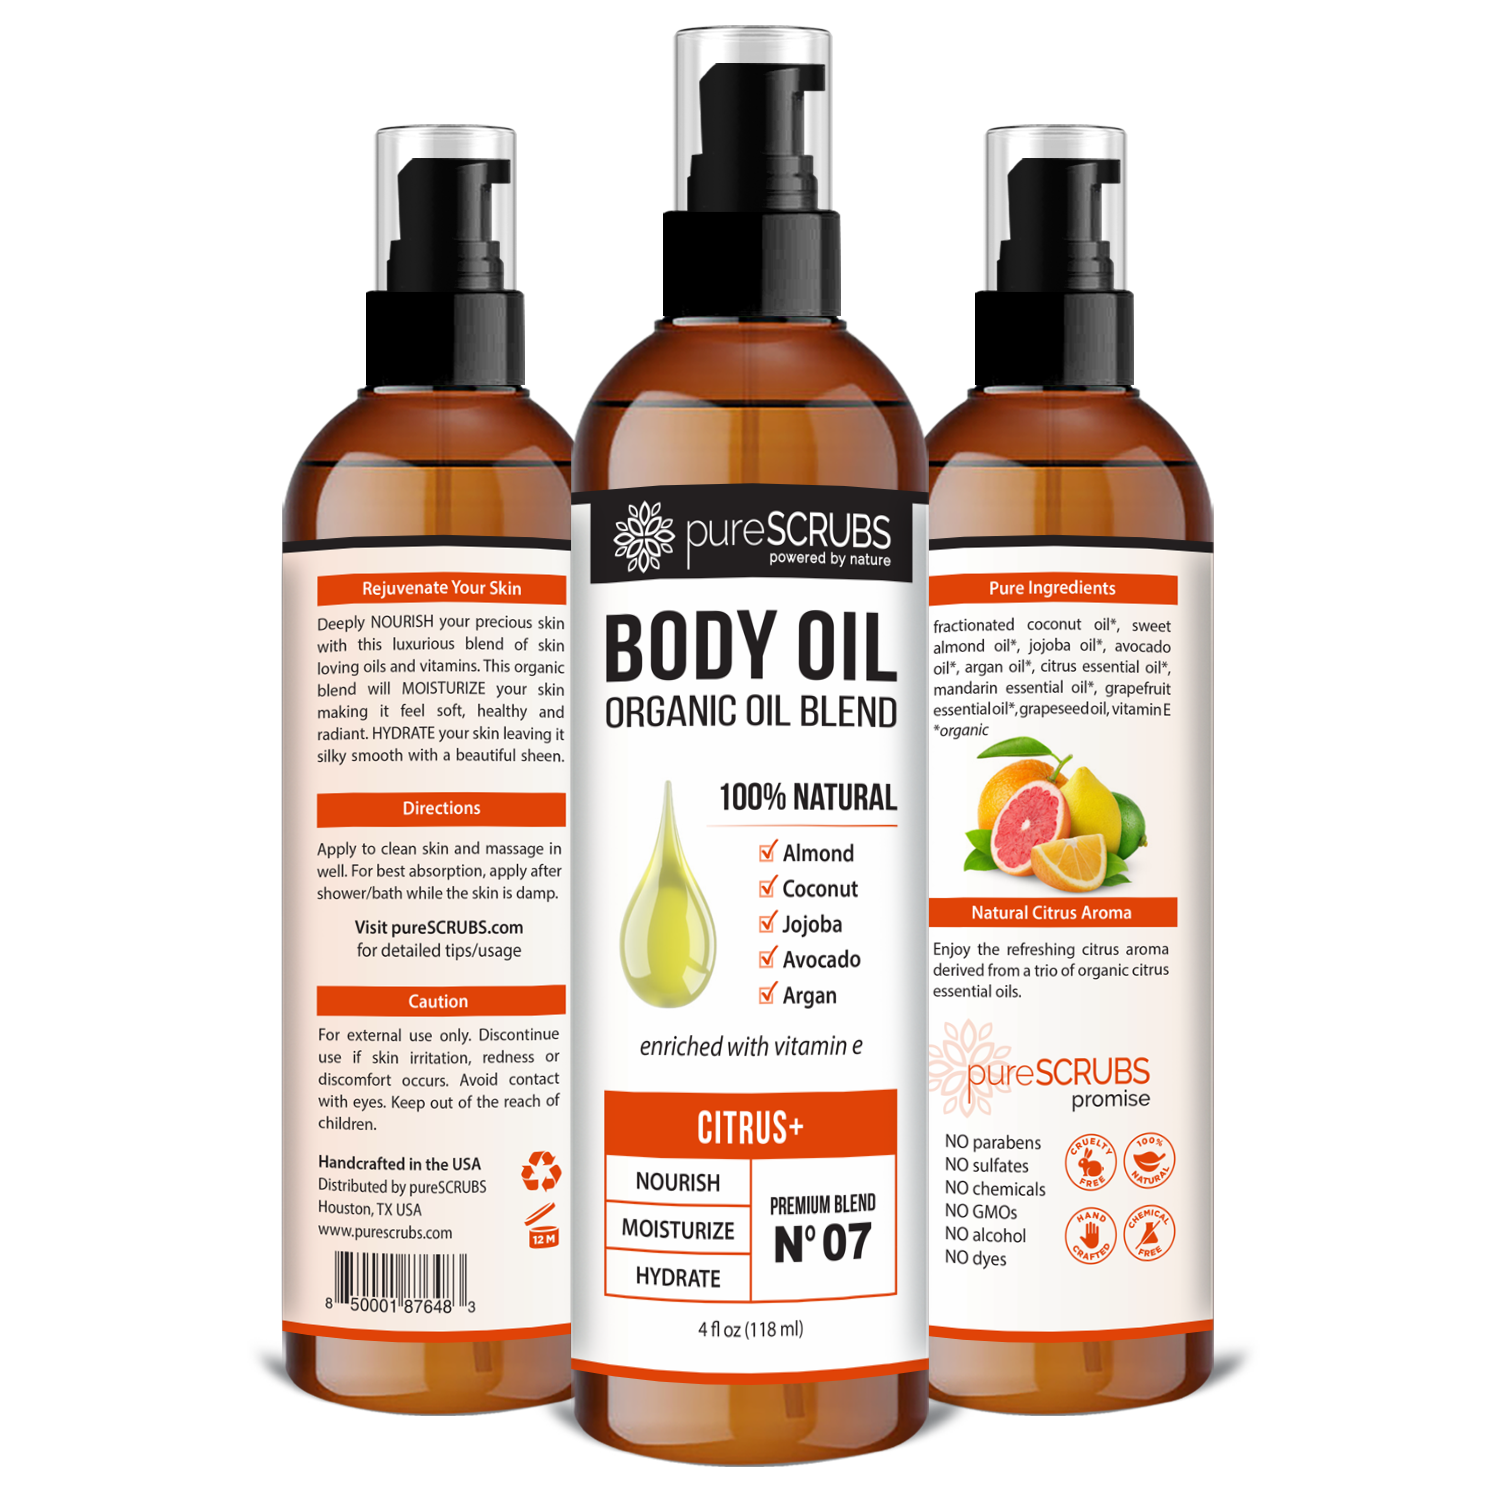 Citrus+ Body Oil / Ultra Moisturizing / Premium Blend #07